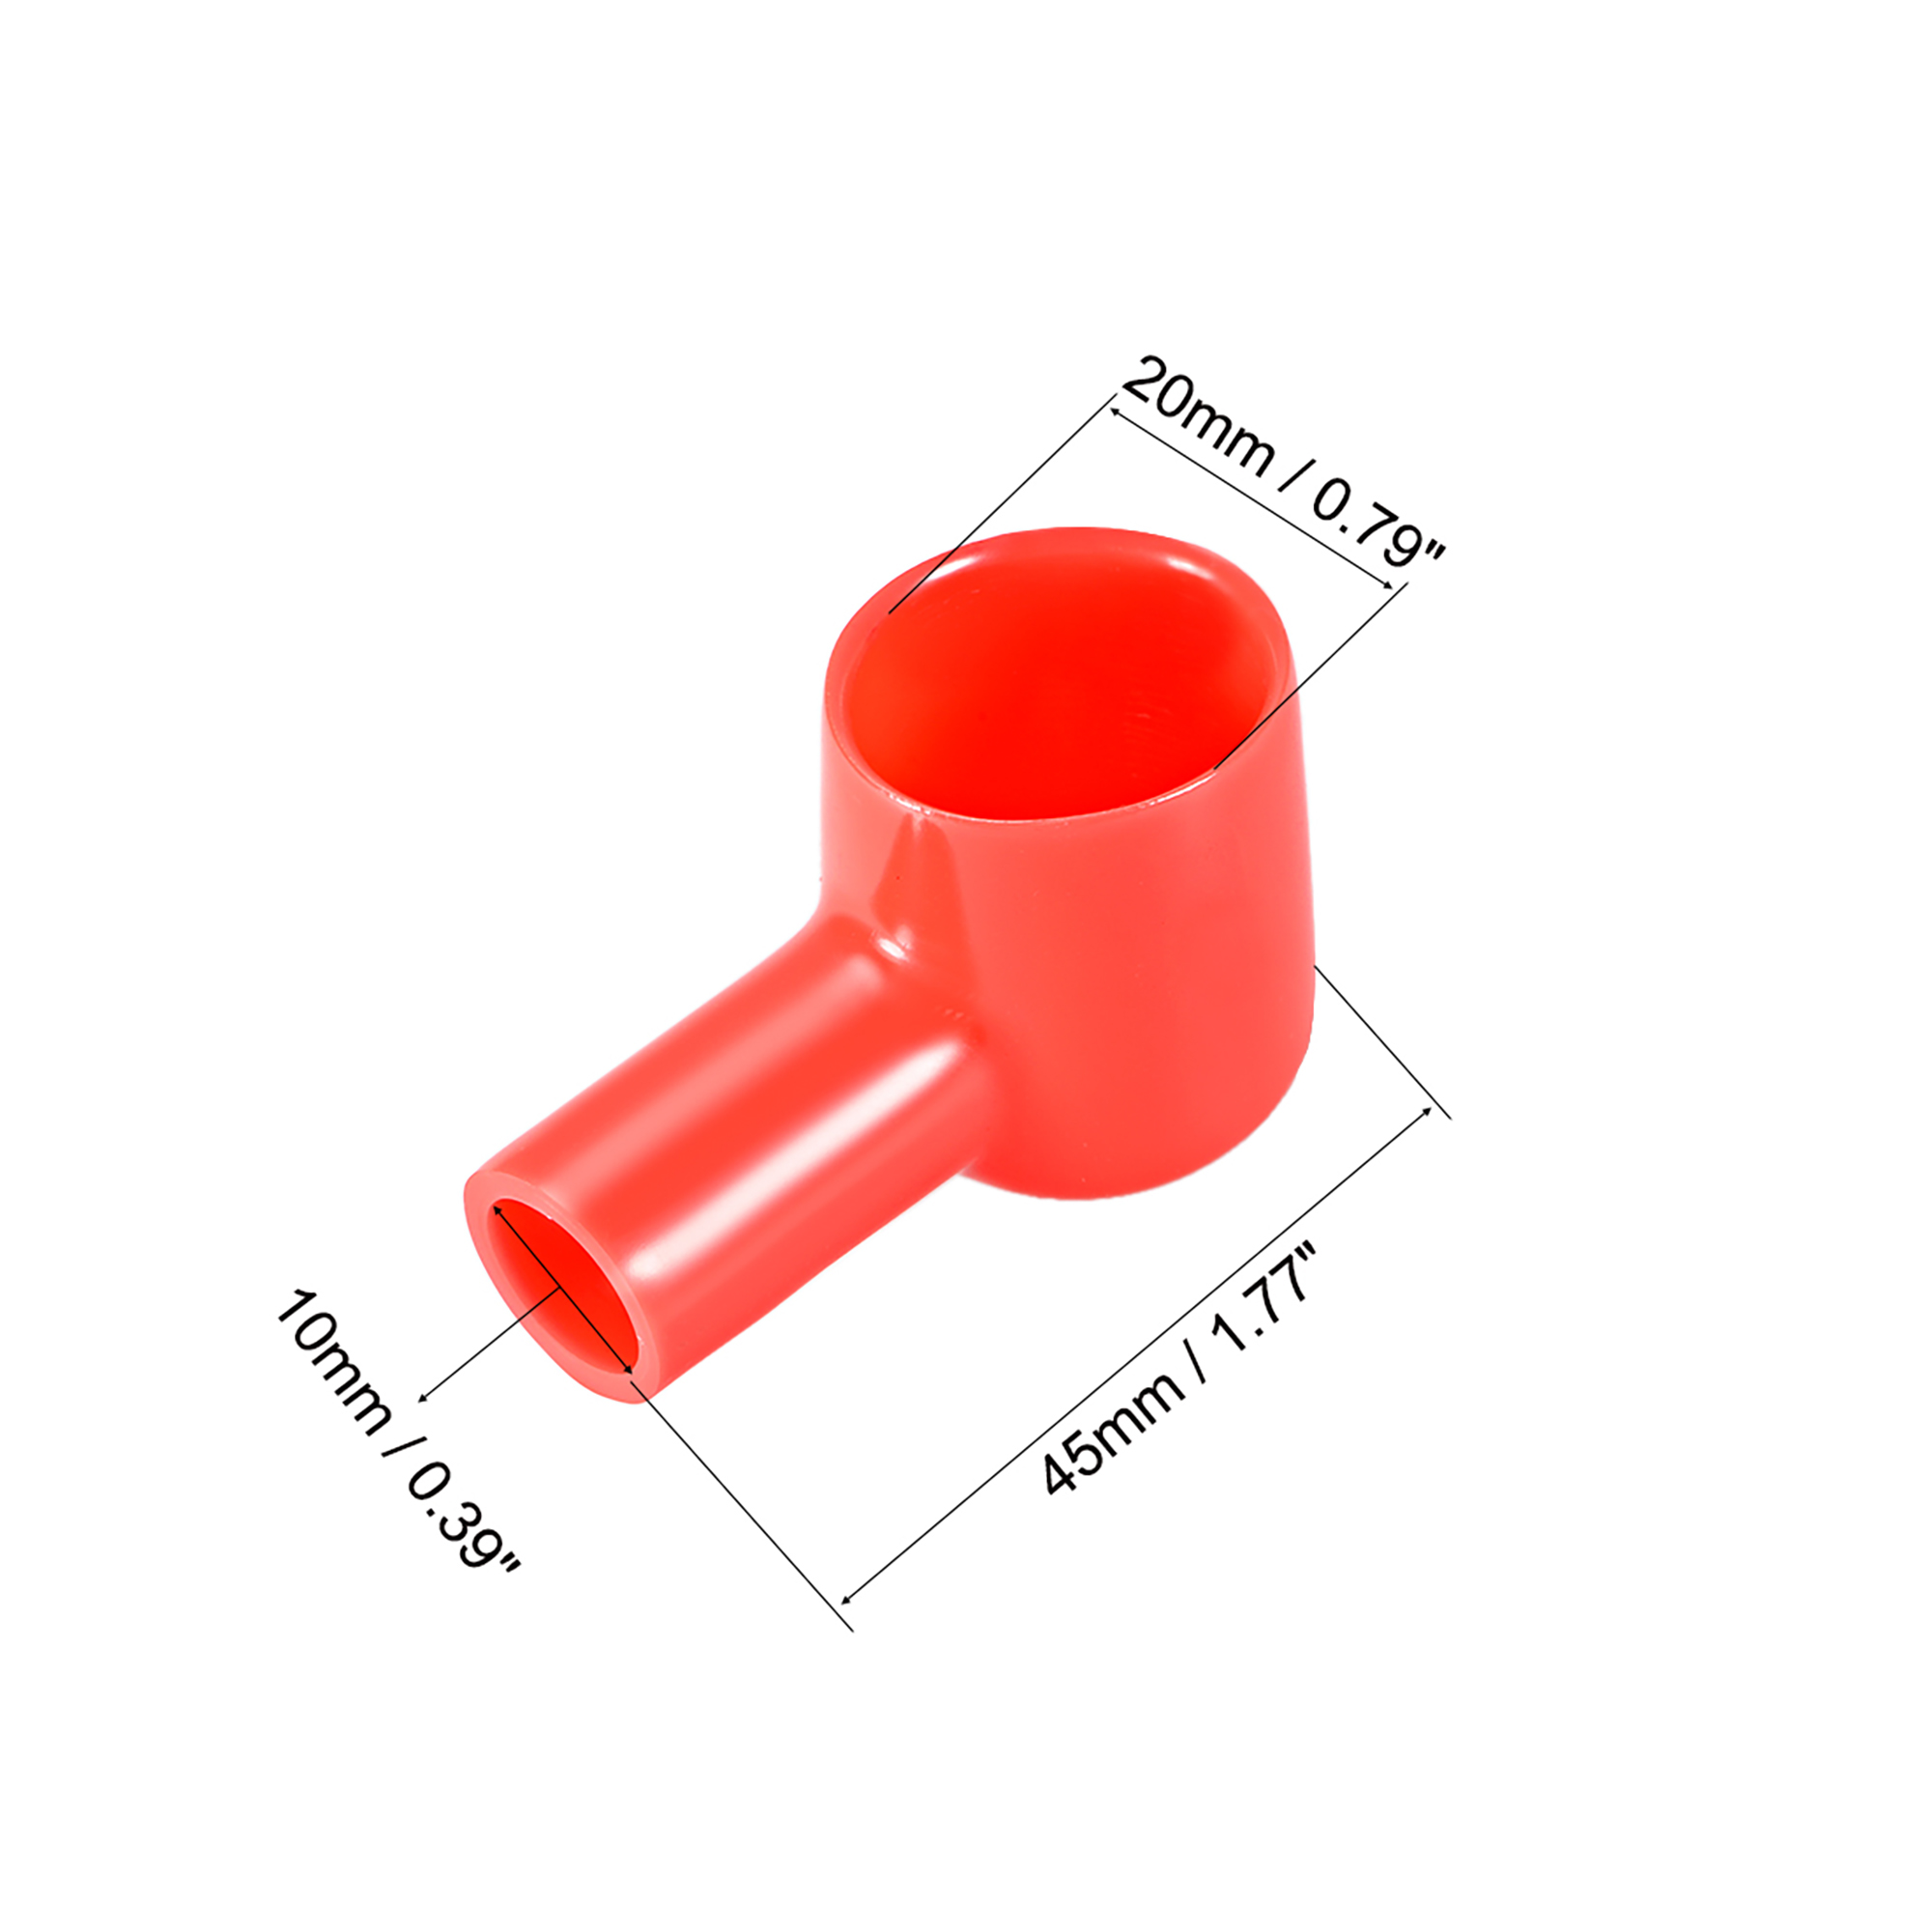 uxcell Battery Terminal Insulating Rubber Protector Covers for 12mm Terminal 3mm Cable Red Black 5 Pairs